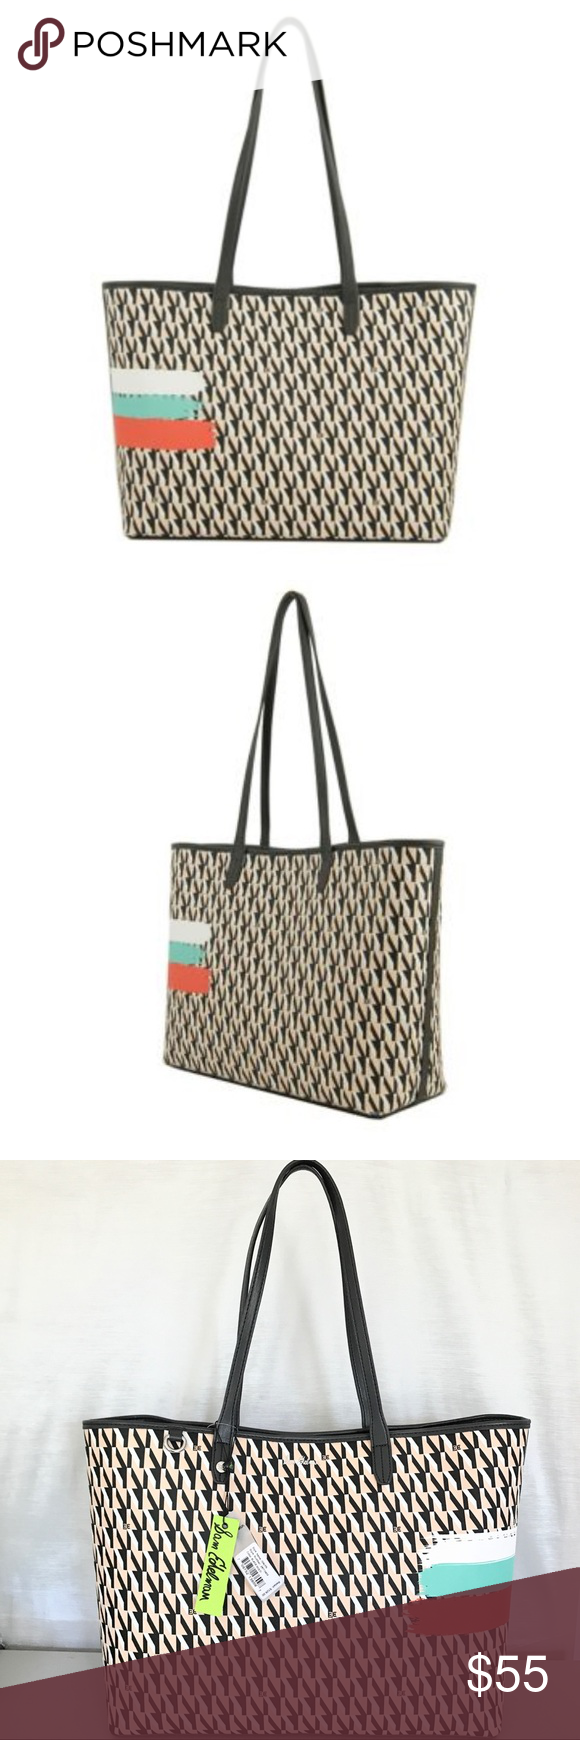 7de9118998 Sam Edelman Isalyn Tote The tote bag that can hold it all